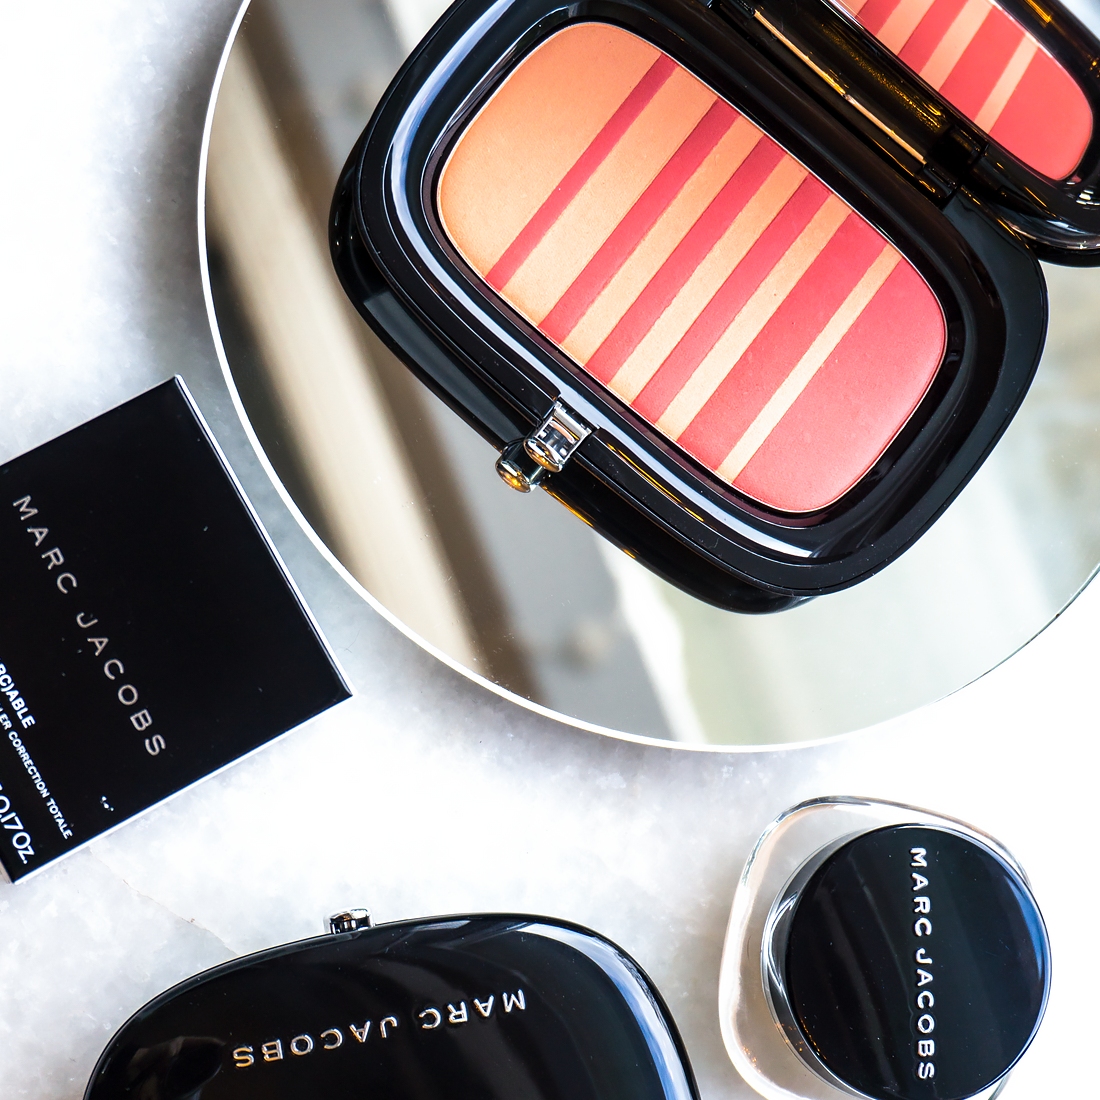 Marc Jacobs Beauty: Are they Cruelty Free and Vegan? + Product and Ingredient Review.